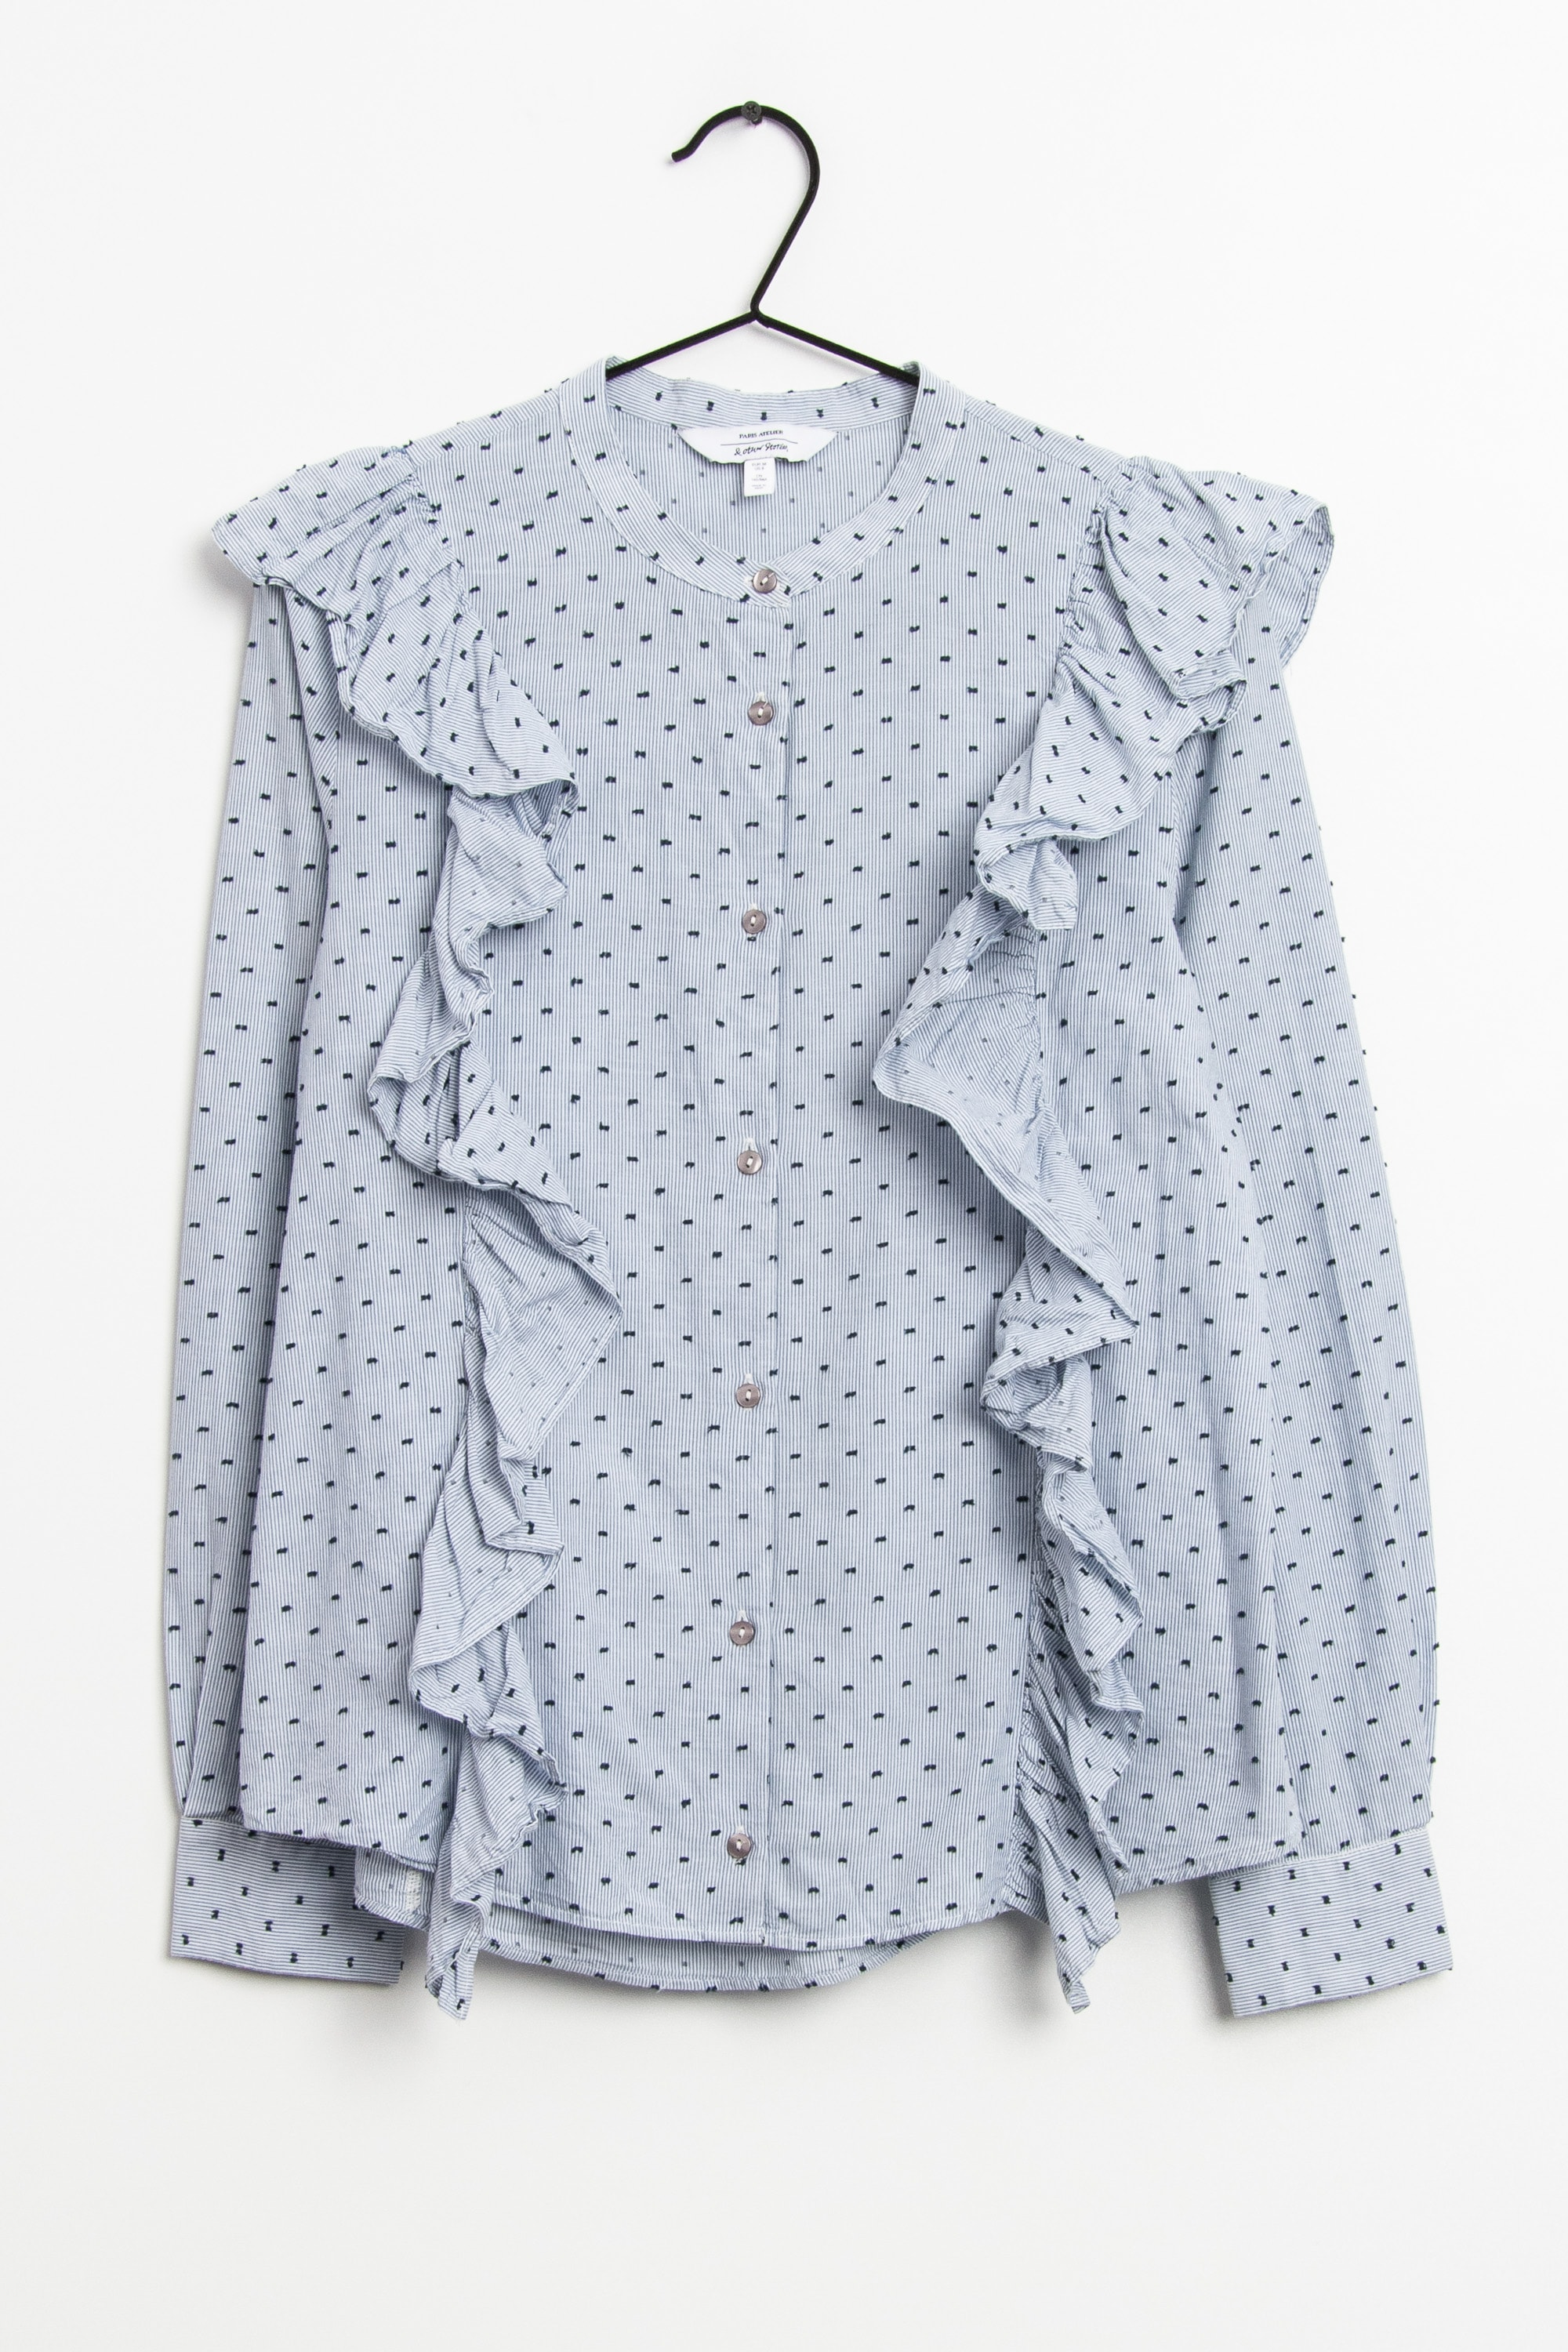 & other stories Bluse Blau Gr.38